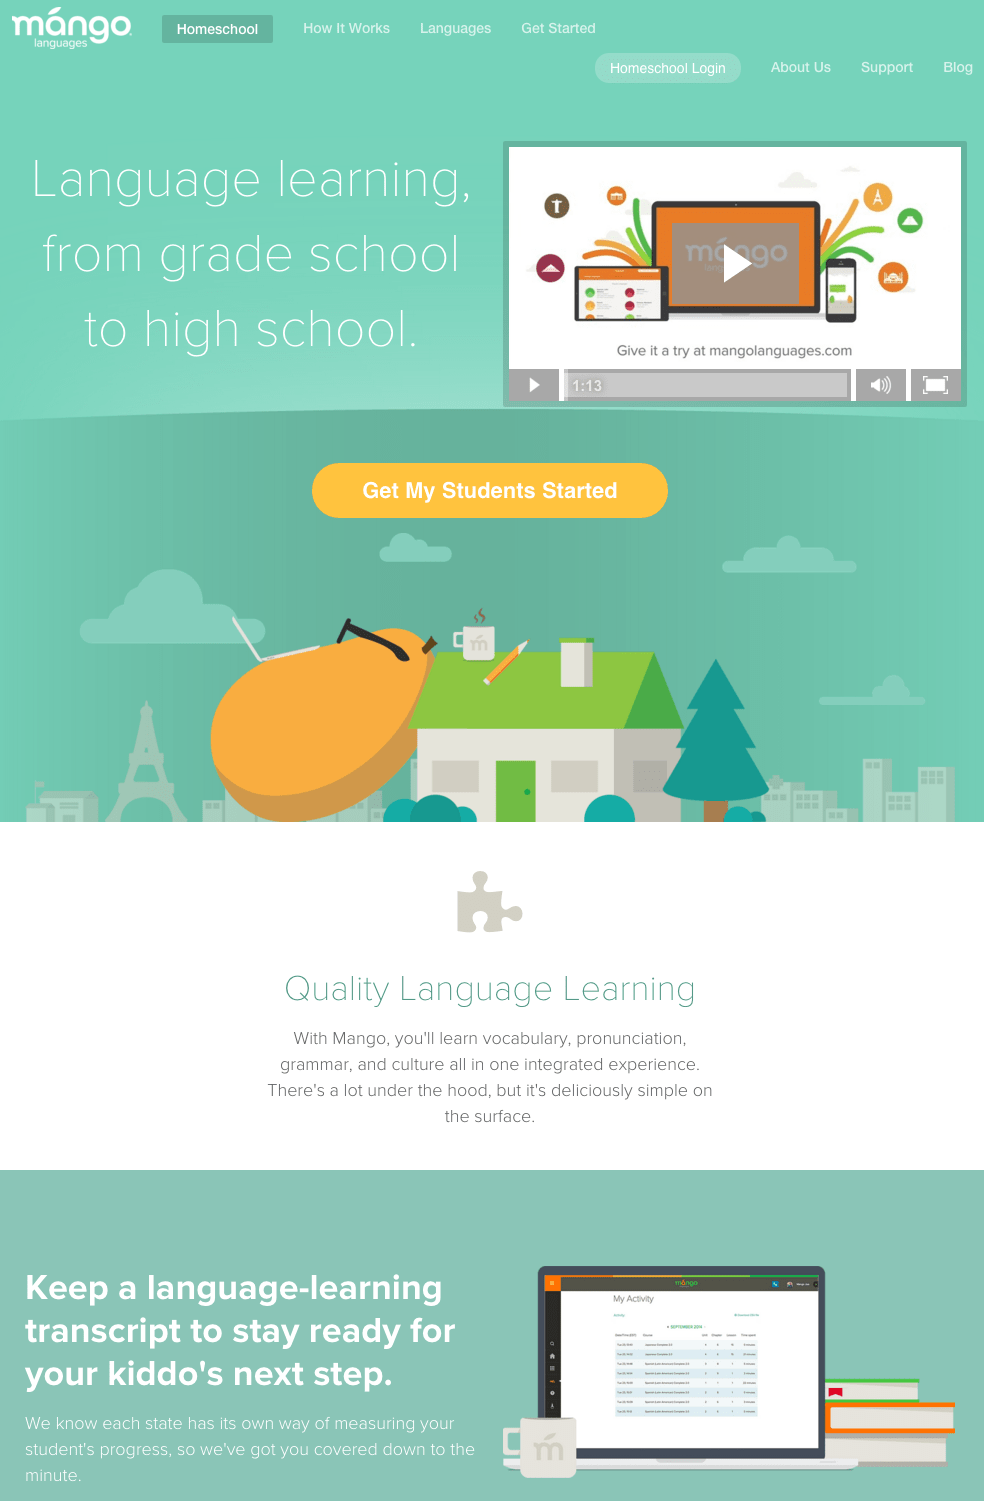 mango-product-page.png